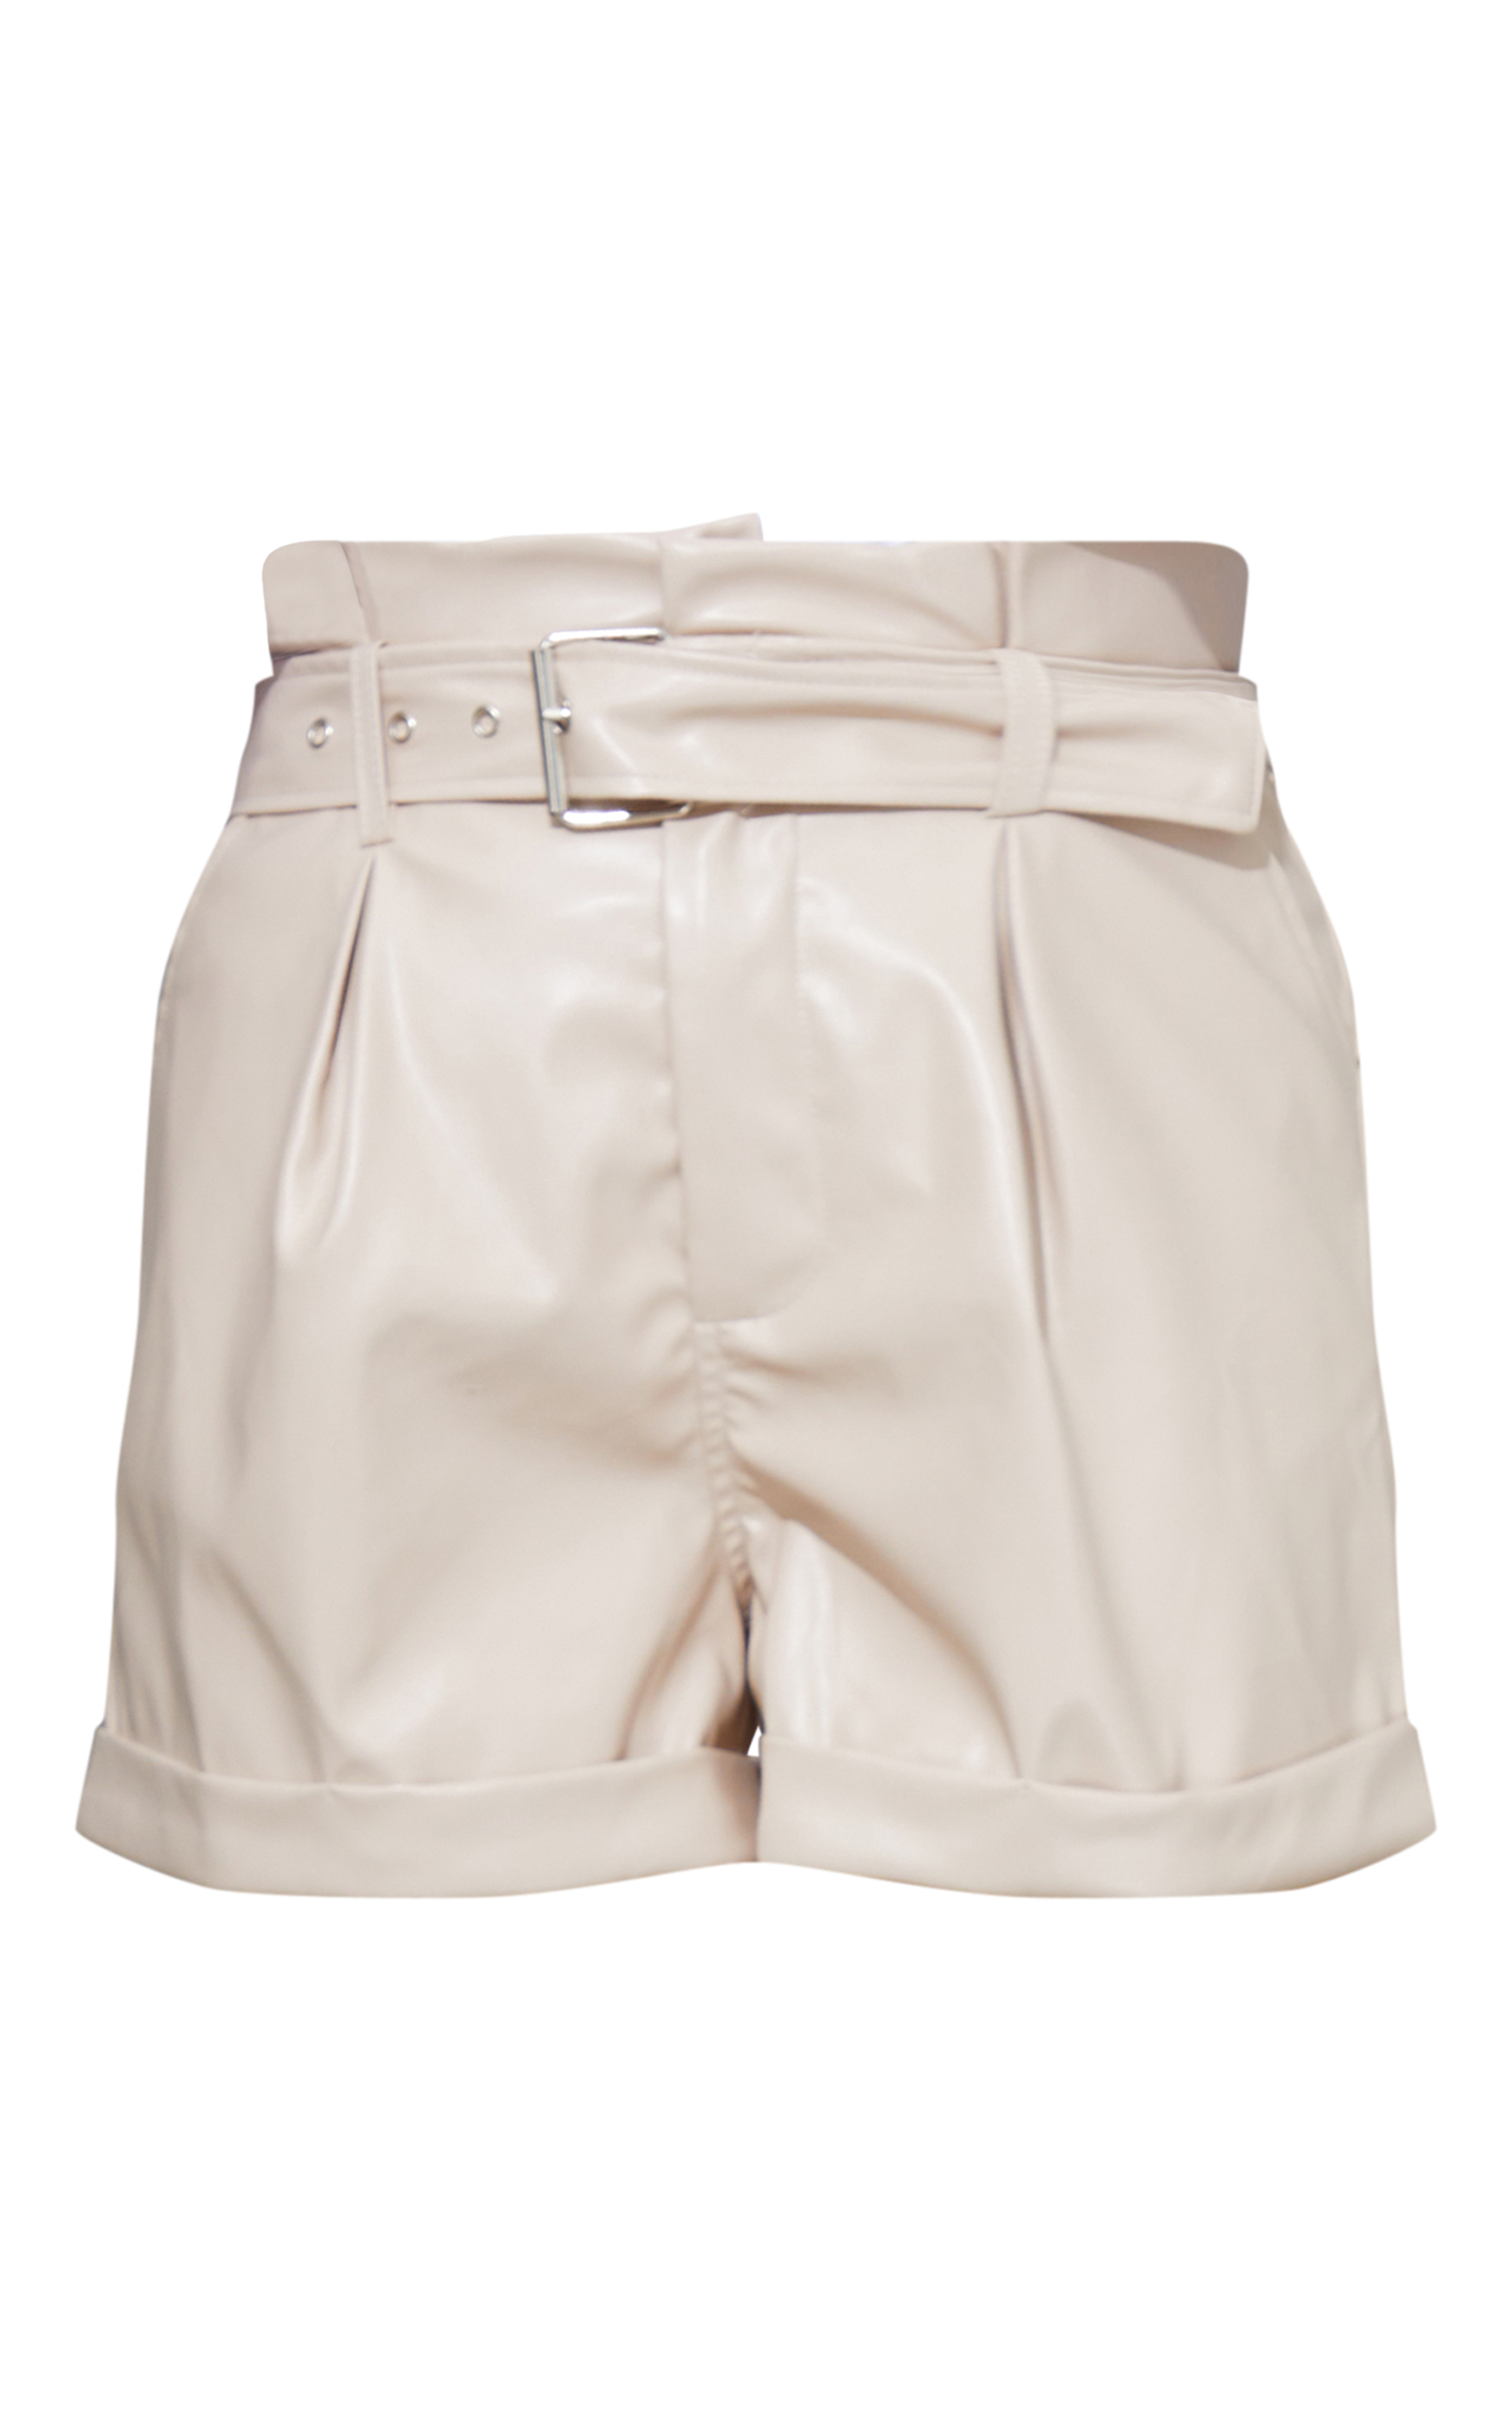 Stone Belted Faux Leather Turn Up Hem Shorts 6